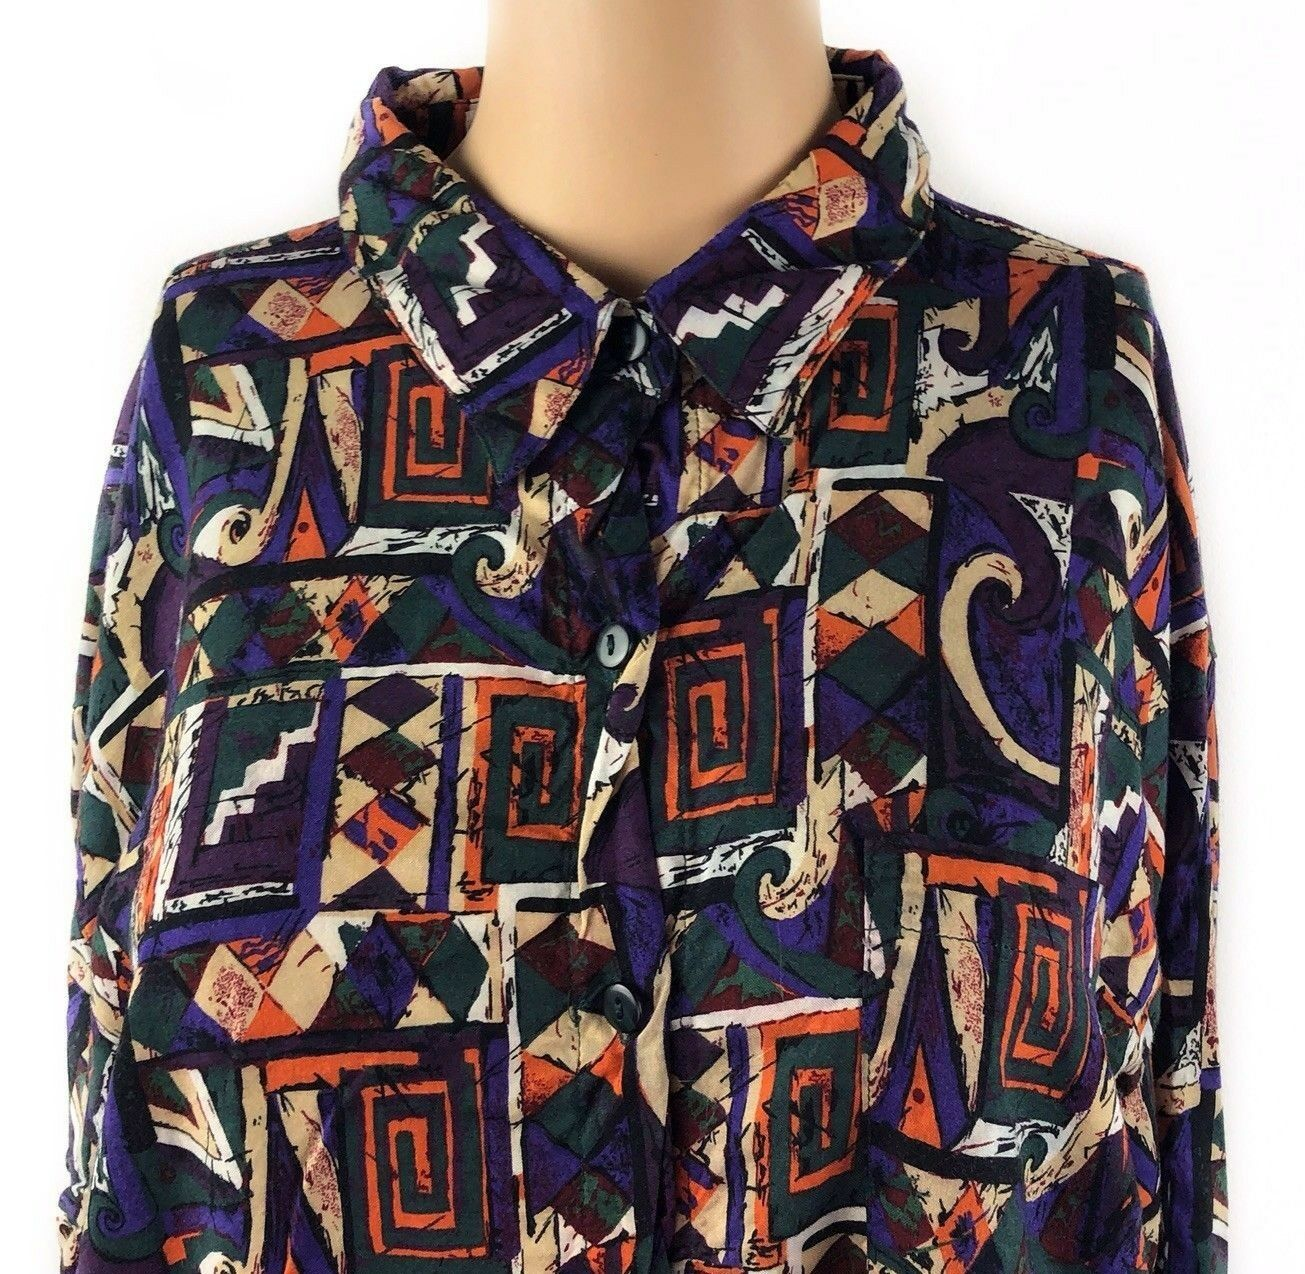 Classic Kikomo Authentic Shirt 22W 42 Multicolor Abstract Button Front Vintage